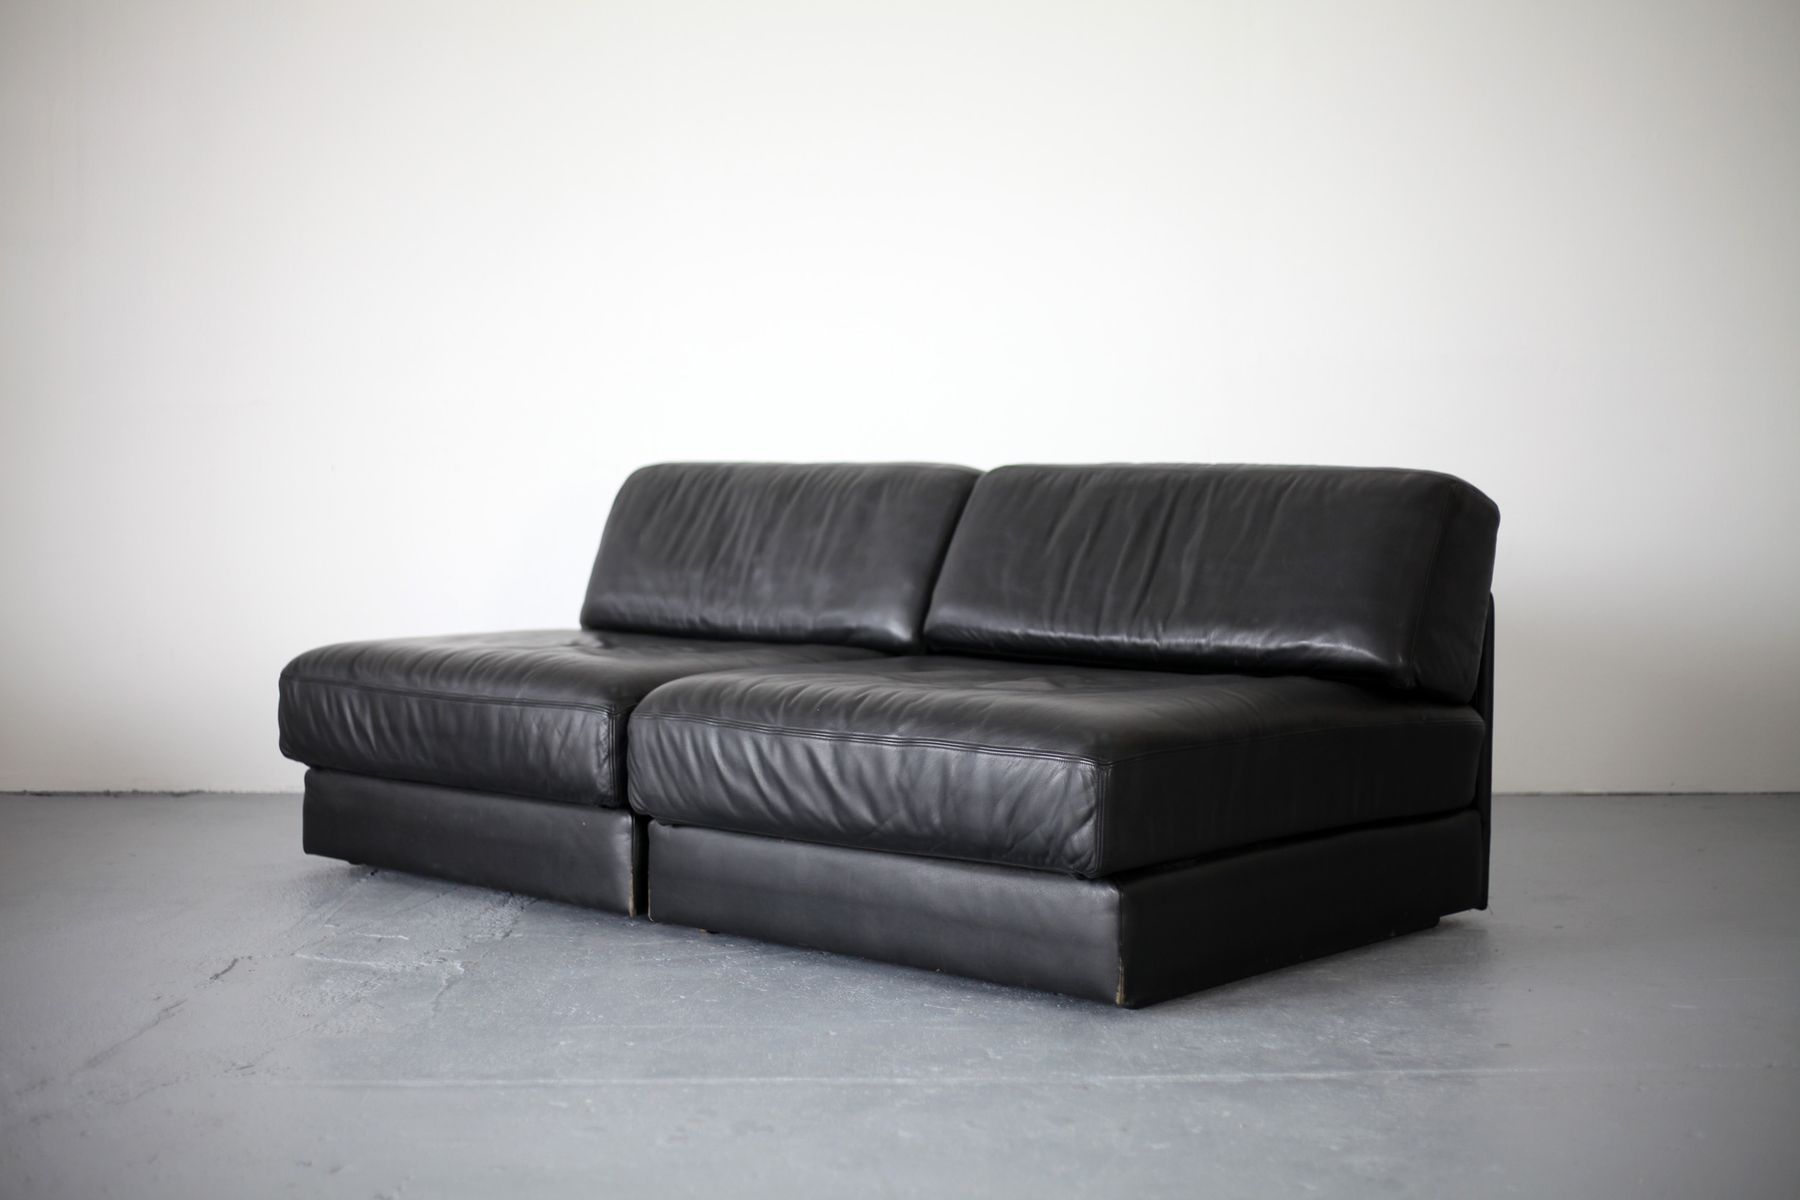 schwarzes vintage ds 76 leder schlafsofa von de sede bei pamono kaufen. Black Bedroom Furniture Sets. Home Design Ideas